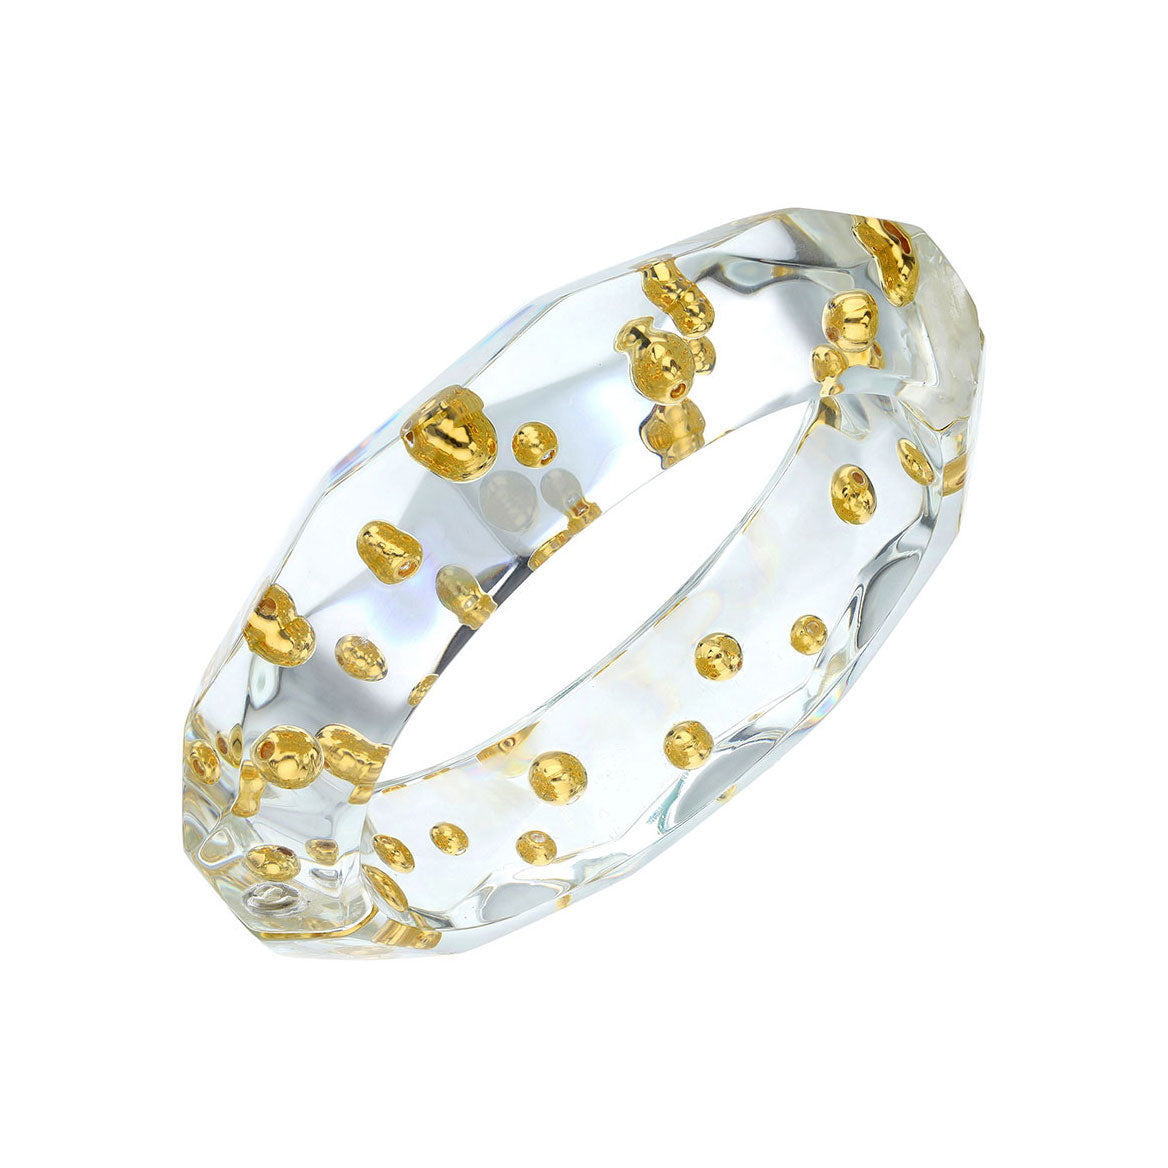 Clear Faceted Lucite Bangle with Gold Beads